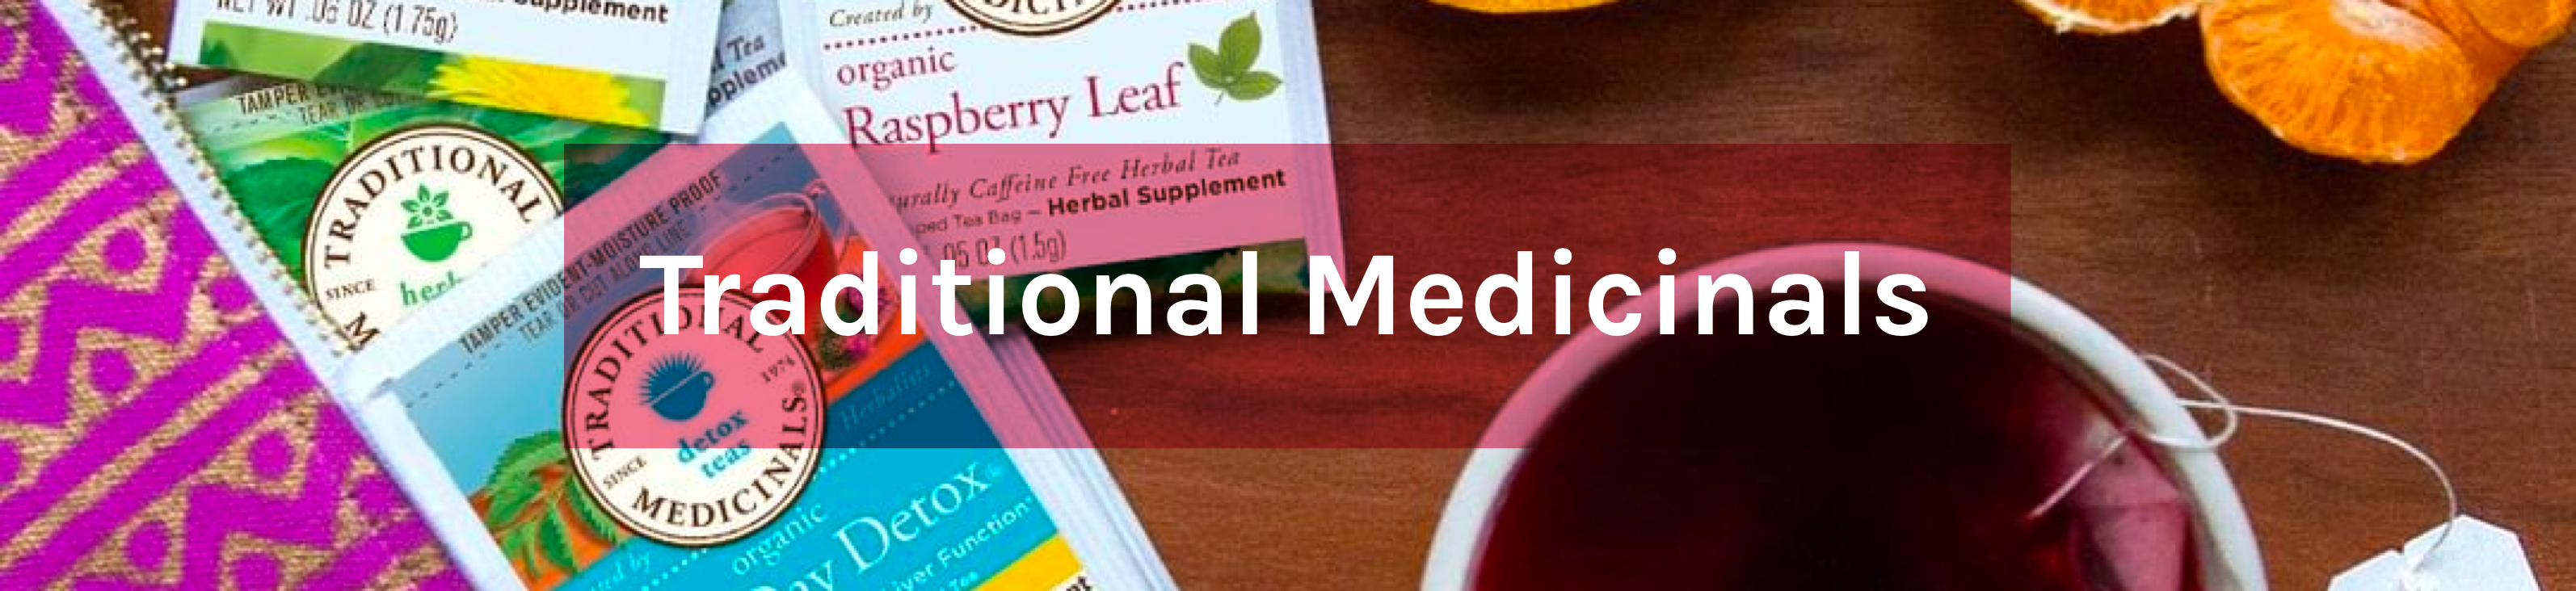 Organic Plastic Free Teas Blog - Traditional Medicionals - The GreenLine Market